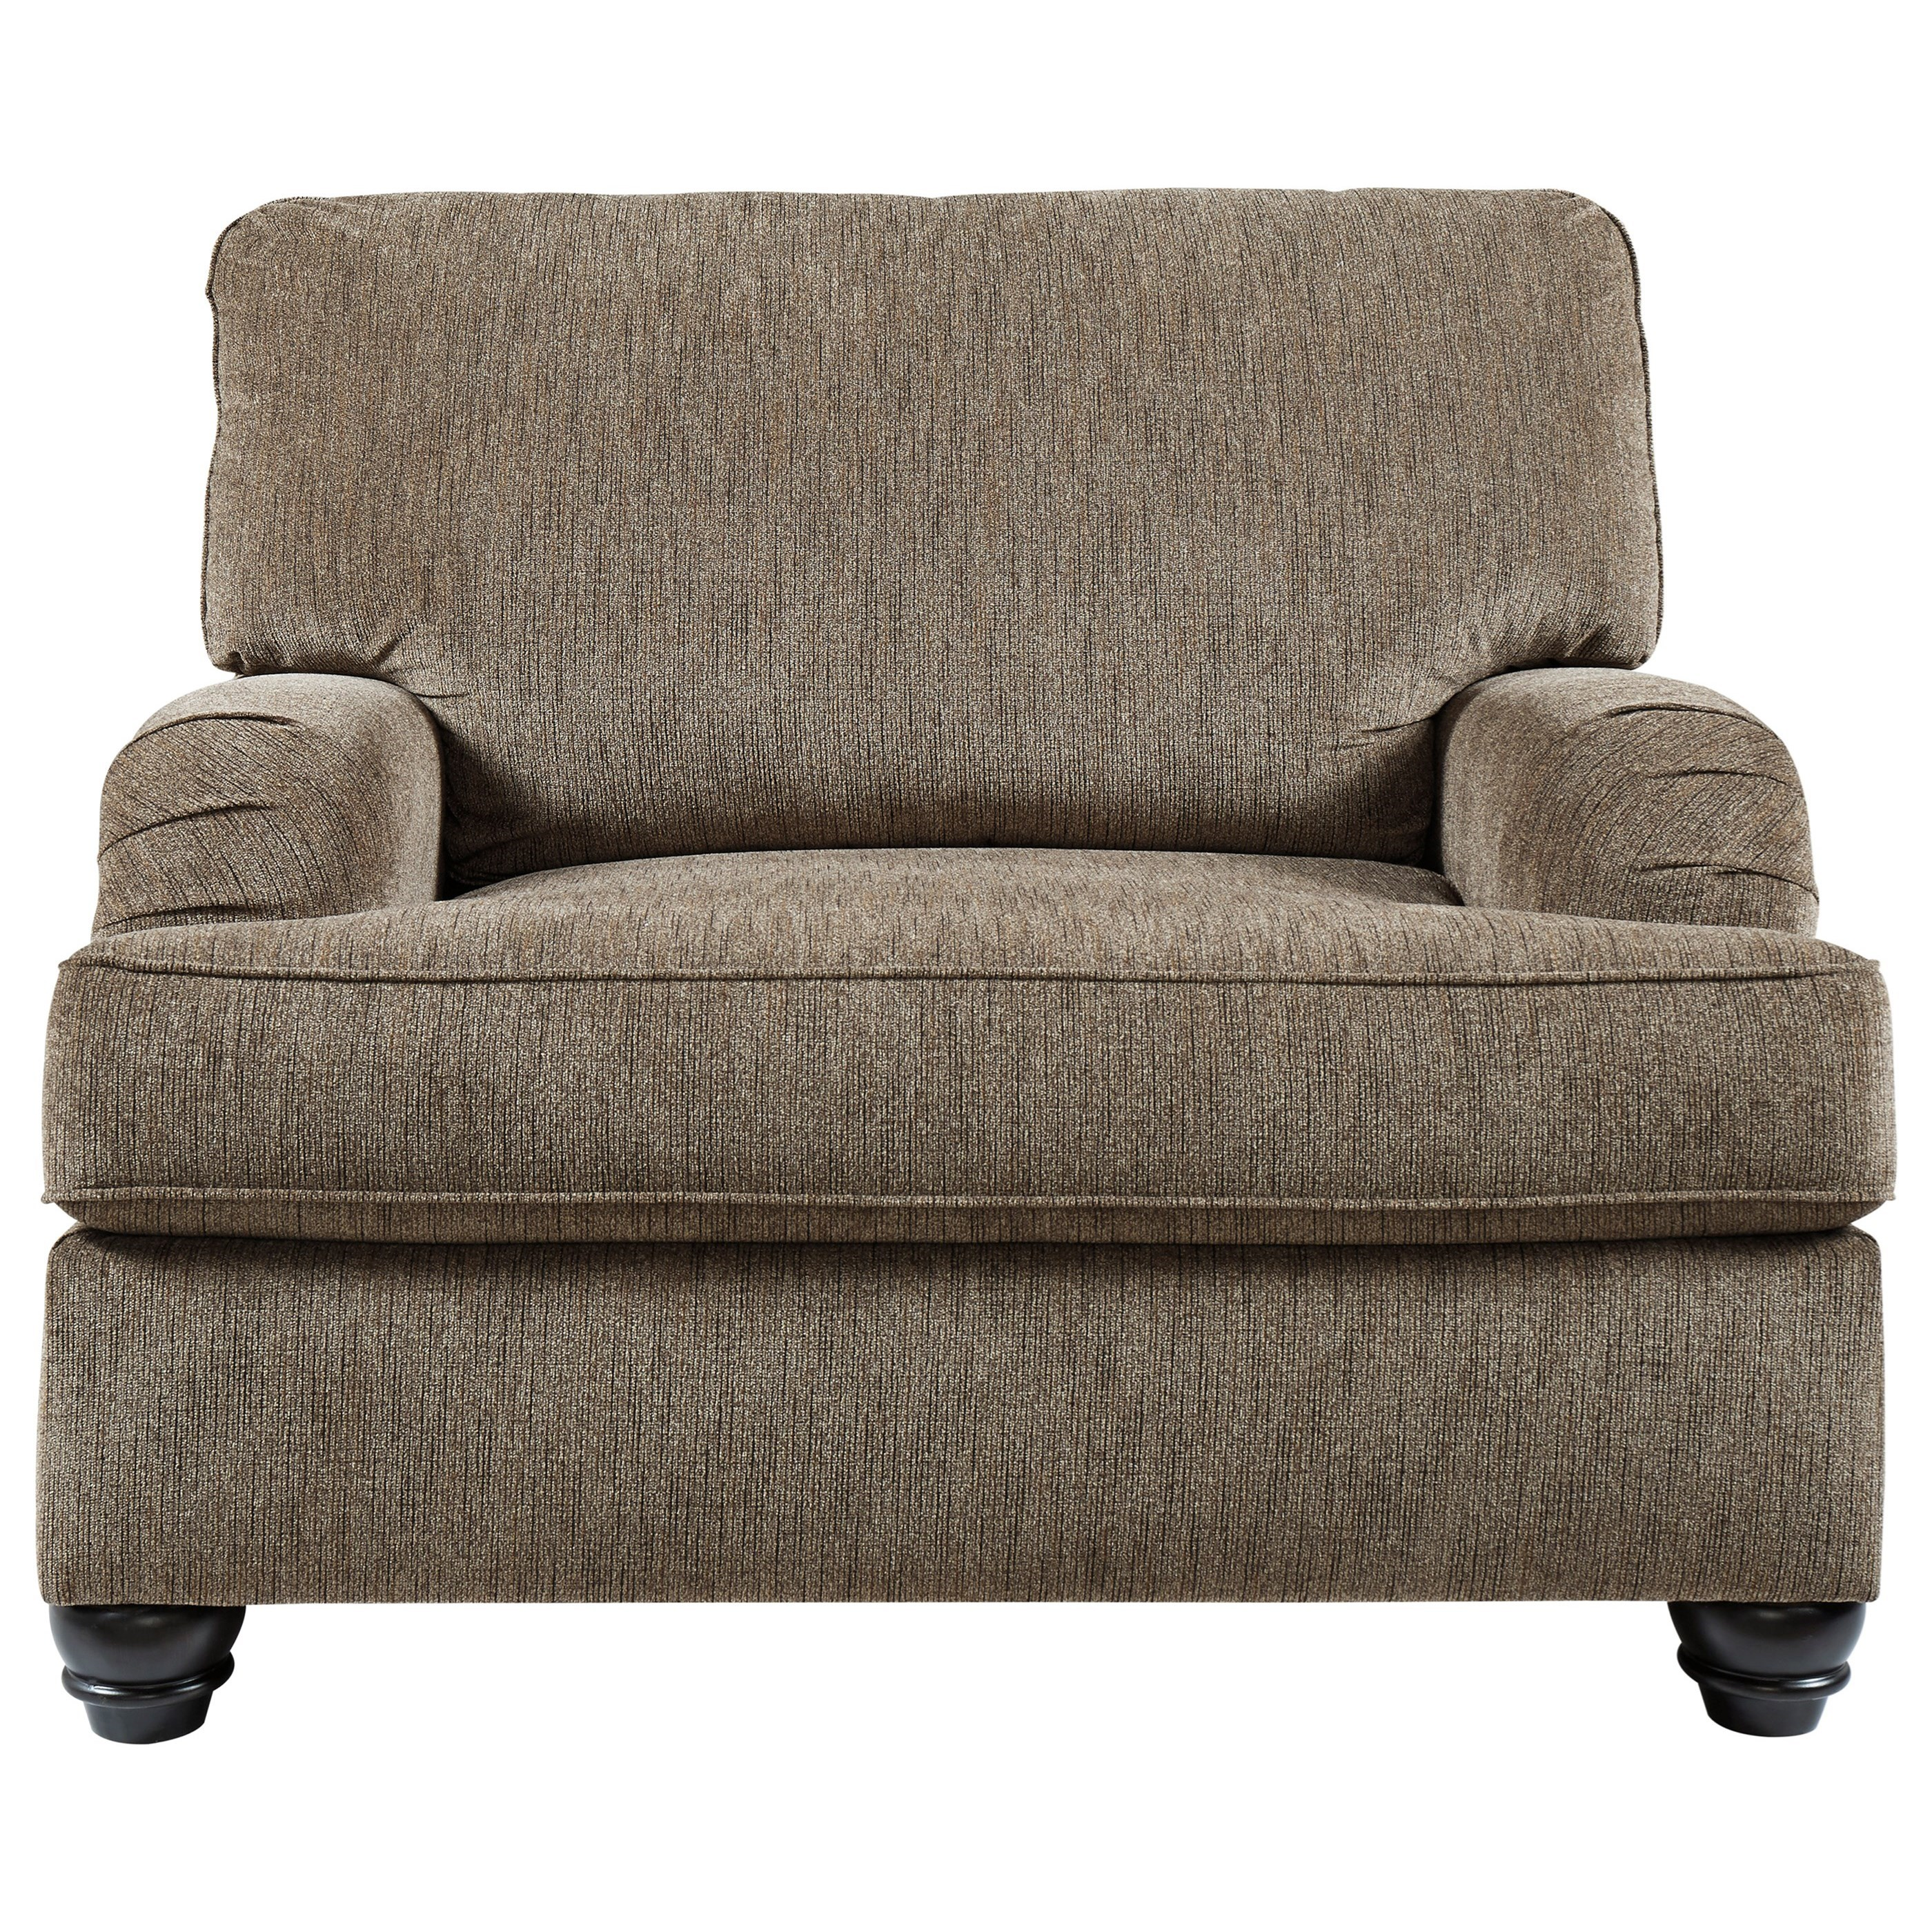 Braemar Chair and a Half by Benchcraft at Walker's Furniture